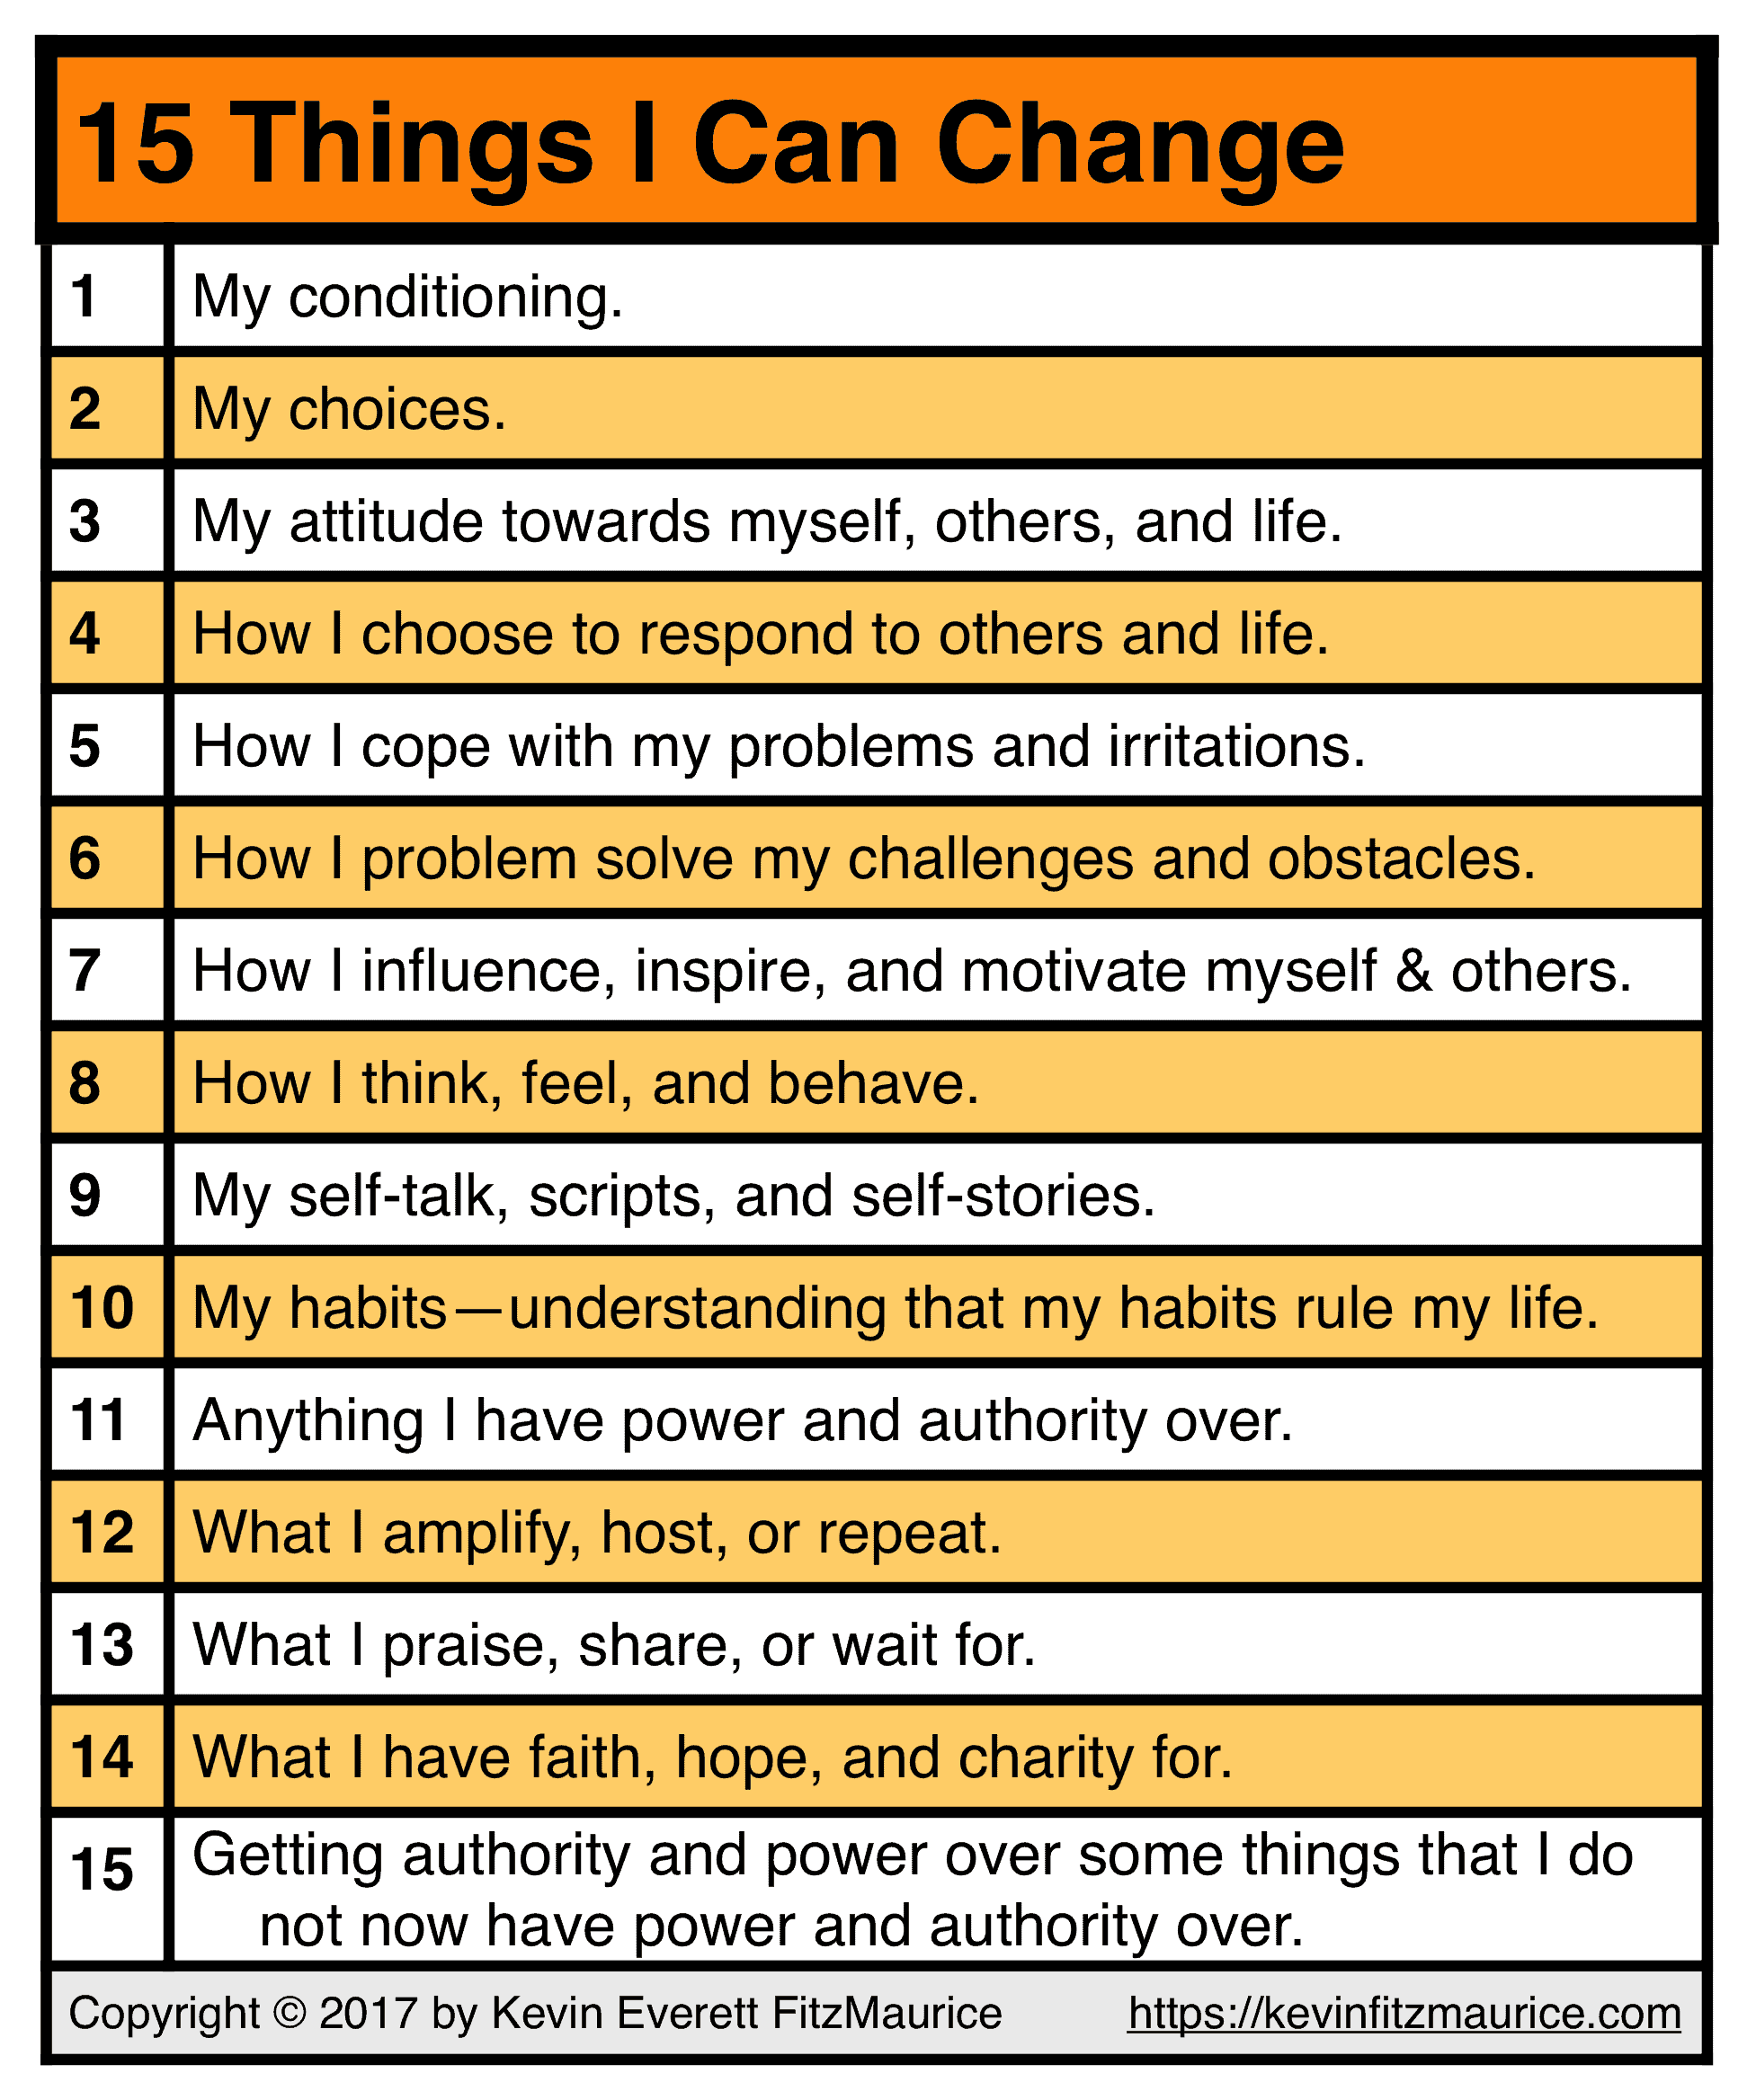 15 Things I Can Change